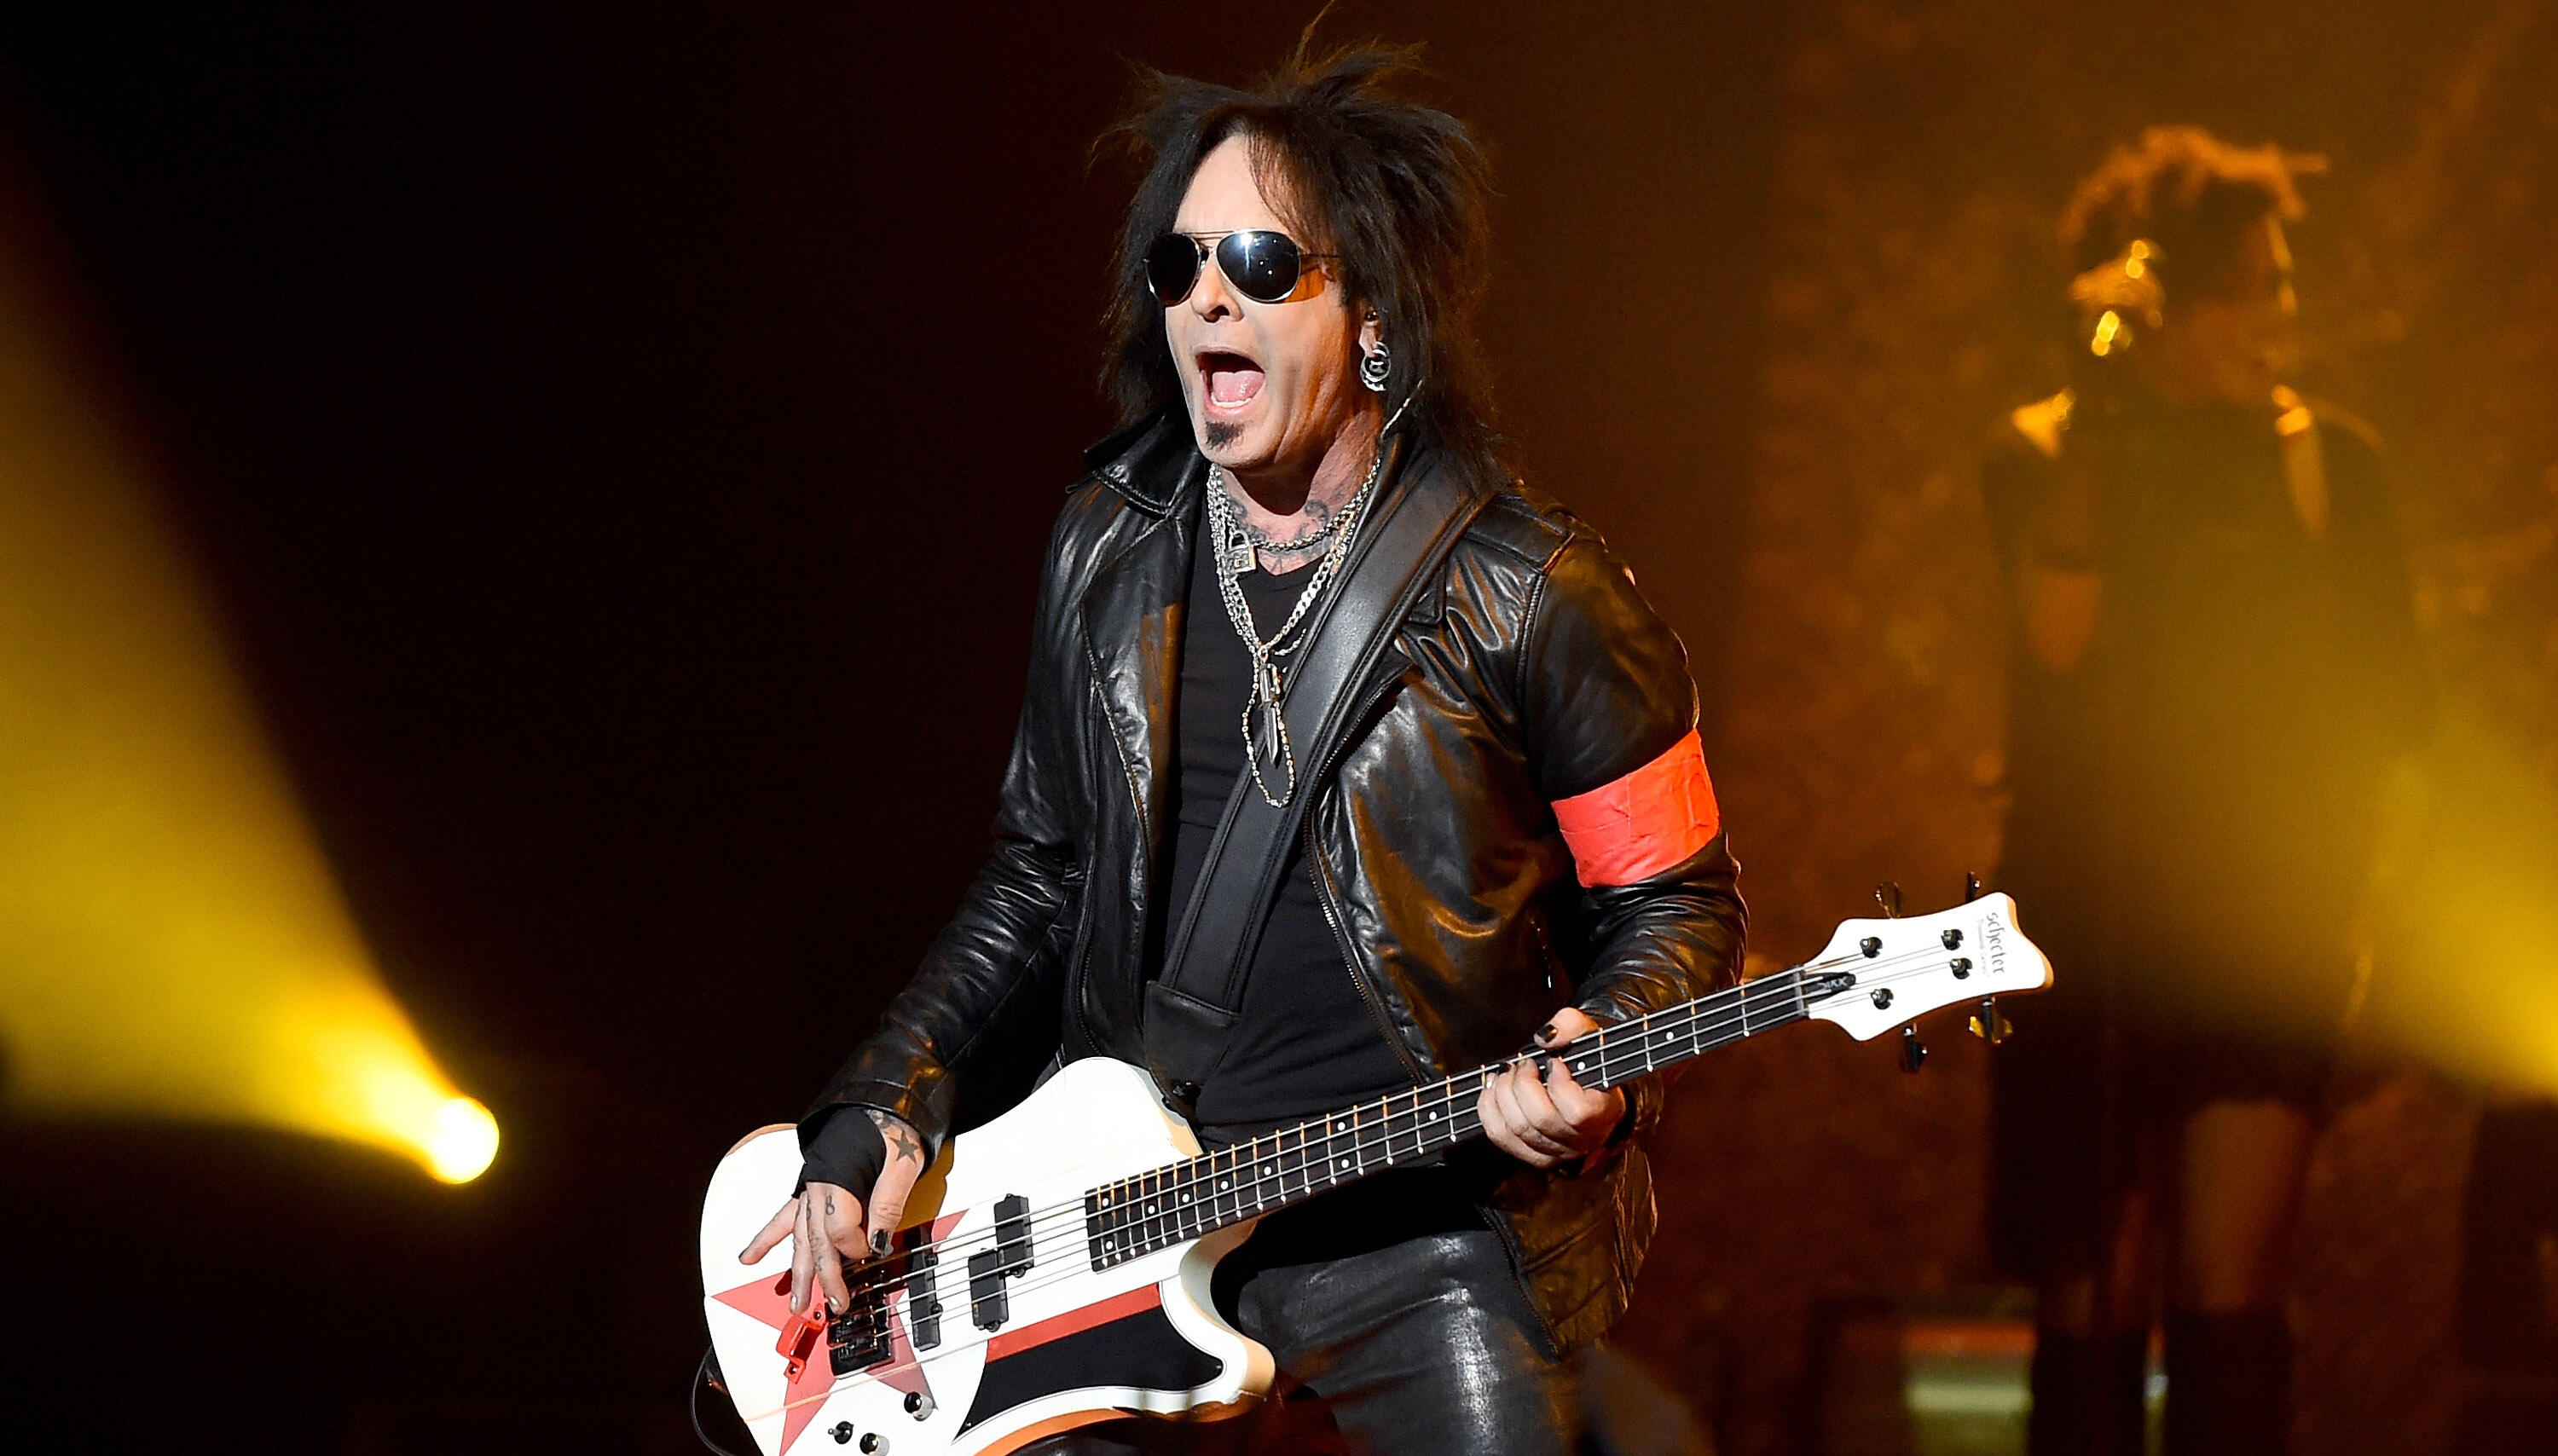 Nikki Sixx Says He May Be The Most Underrated Bassist Ever